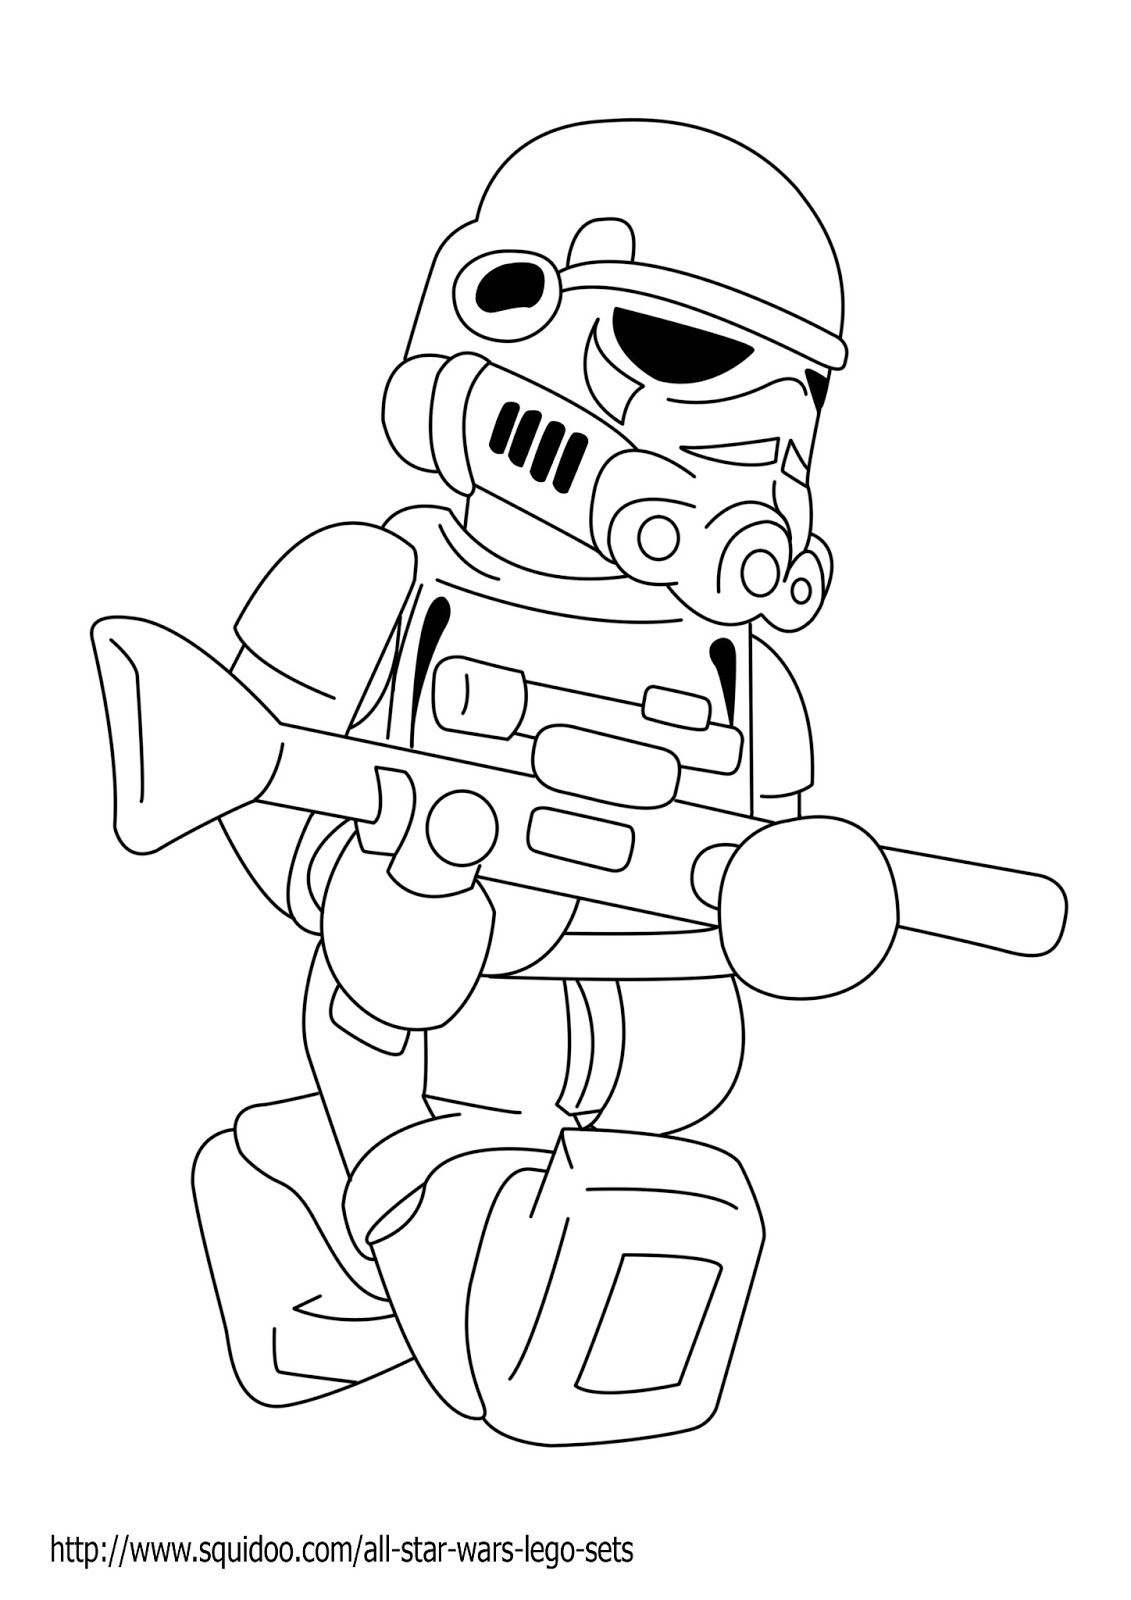 Kleurplaten Star Wars The Force Awakens.Lego Star Wars Coloring Pages Printable Star Wars Coloring Pages